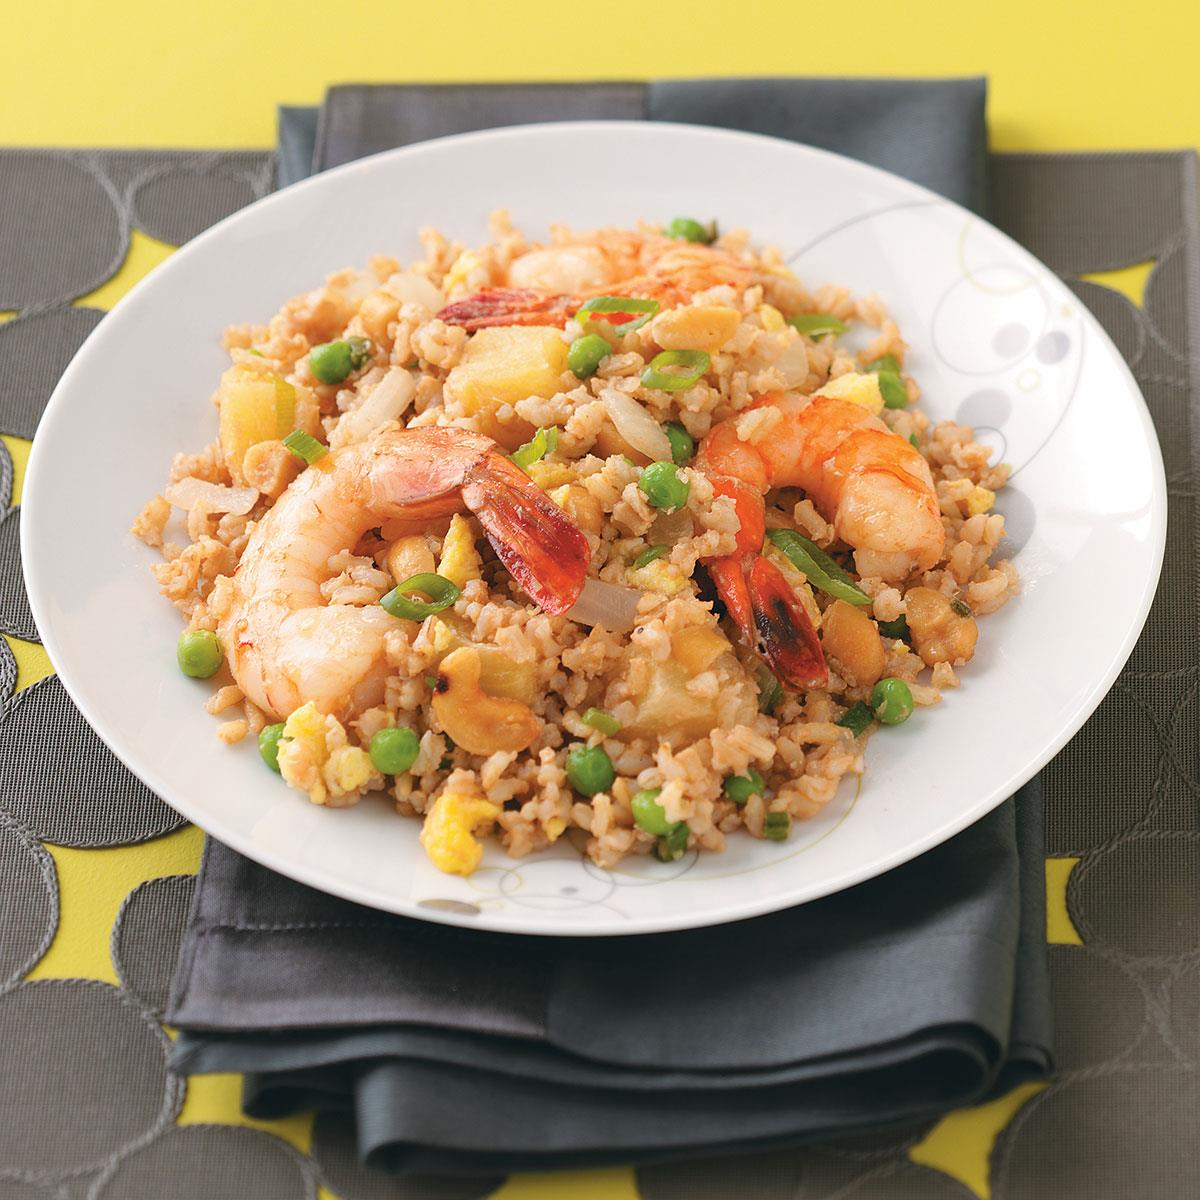 Shrimp and pineapple fried rice recipe taste of home ccuart Gallery